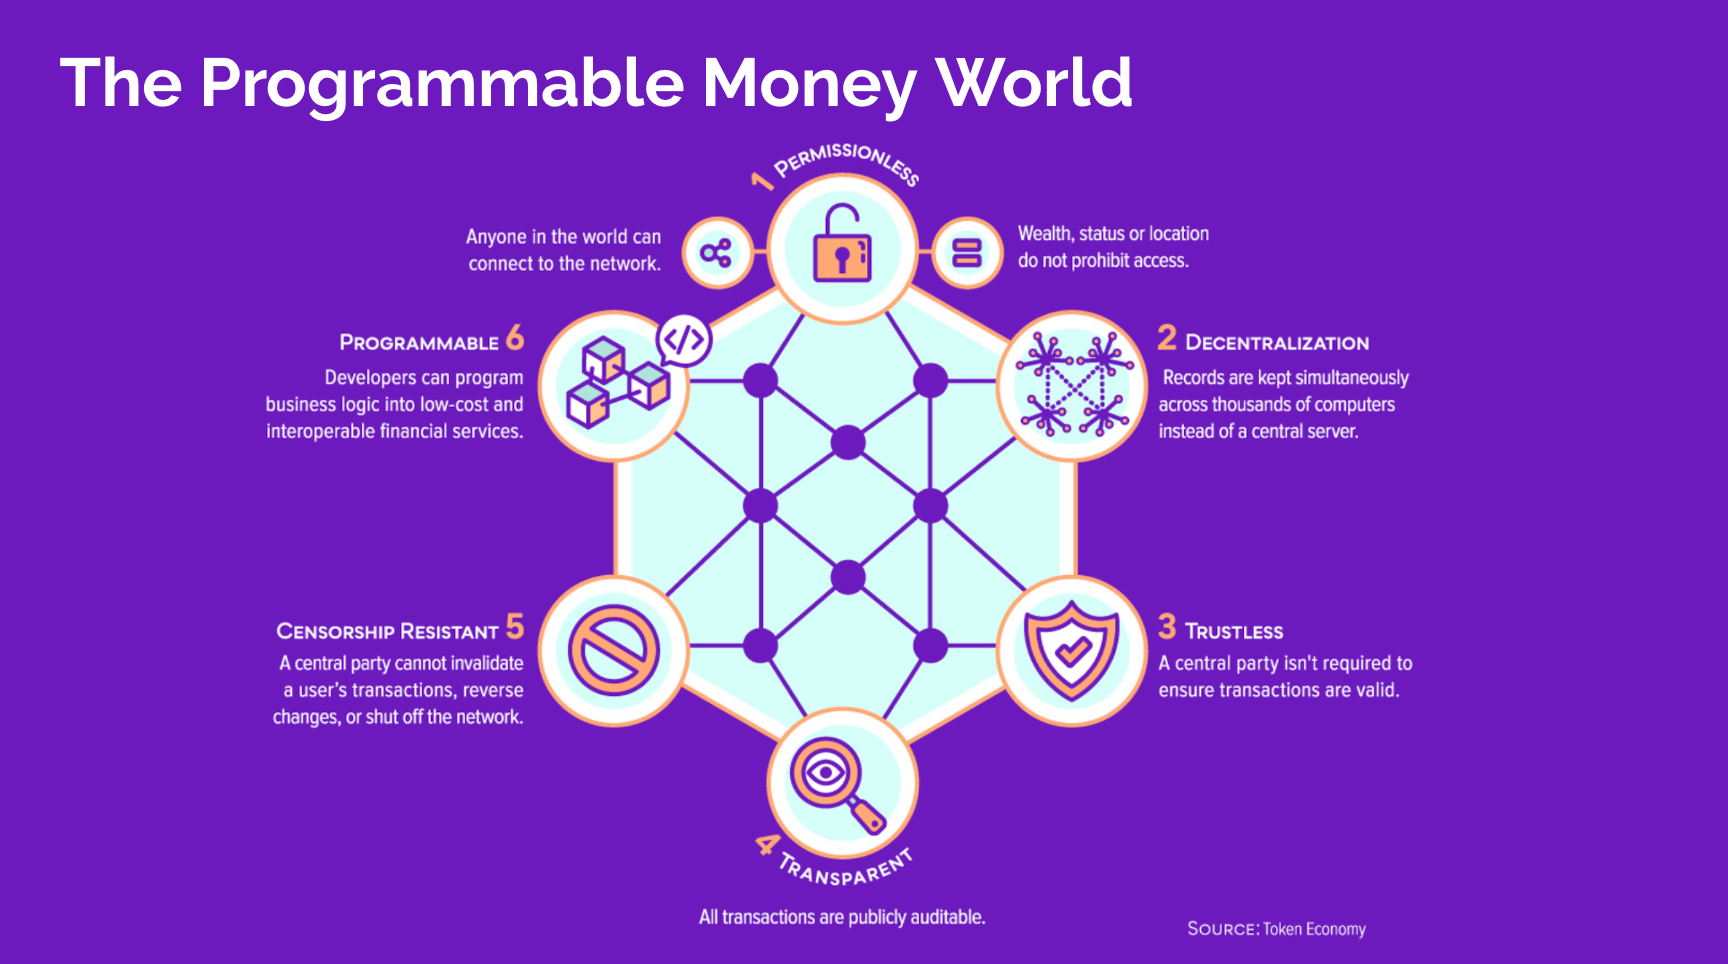 The programmable money world